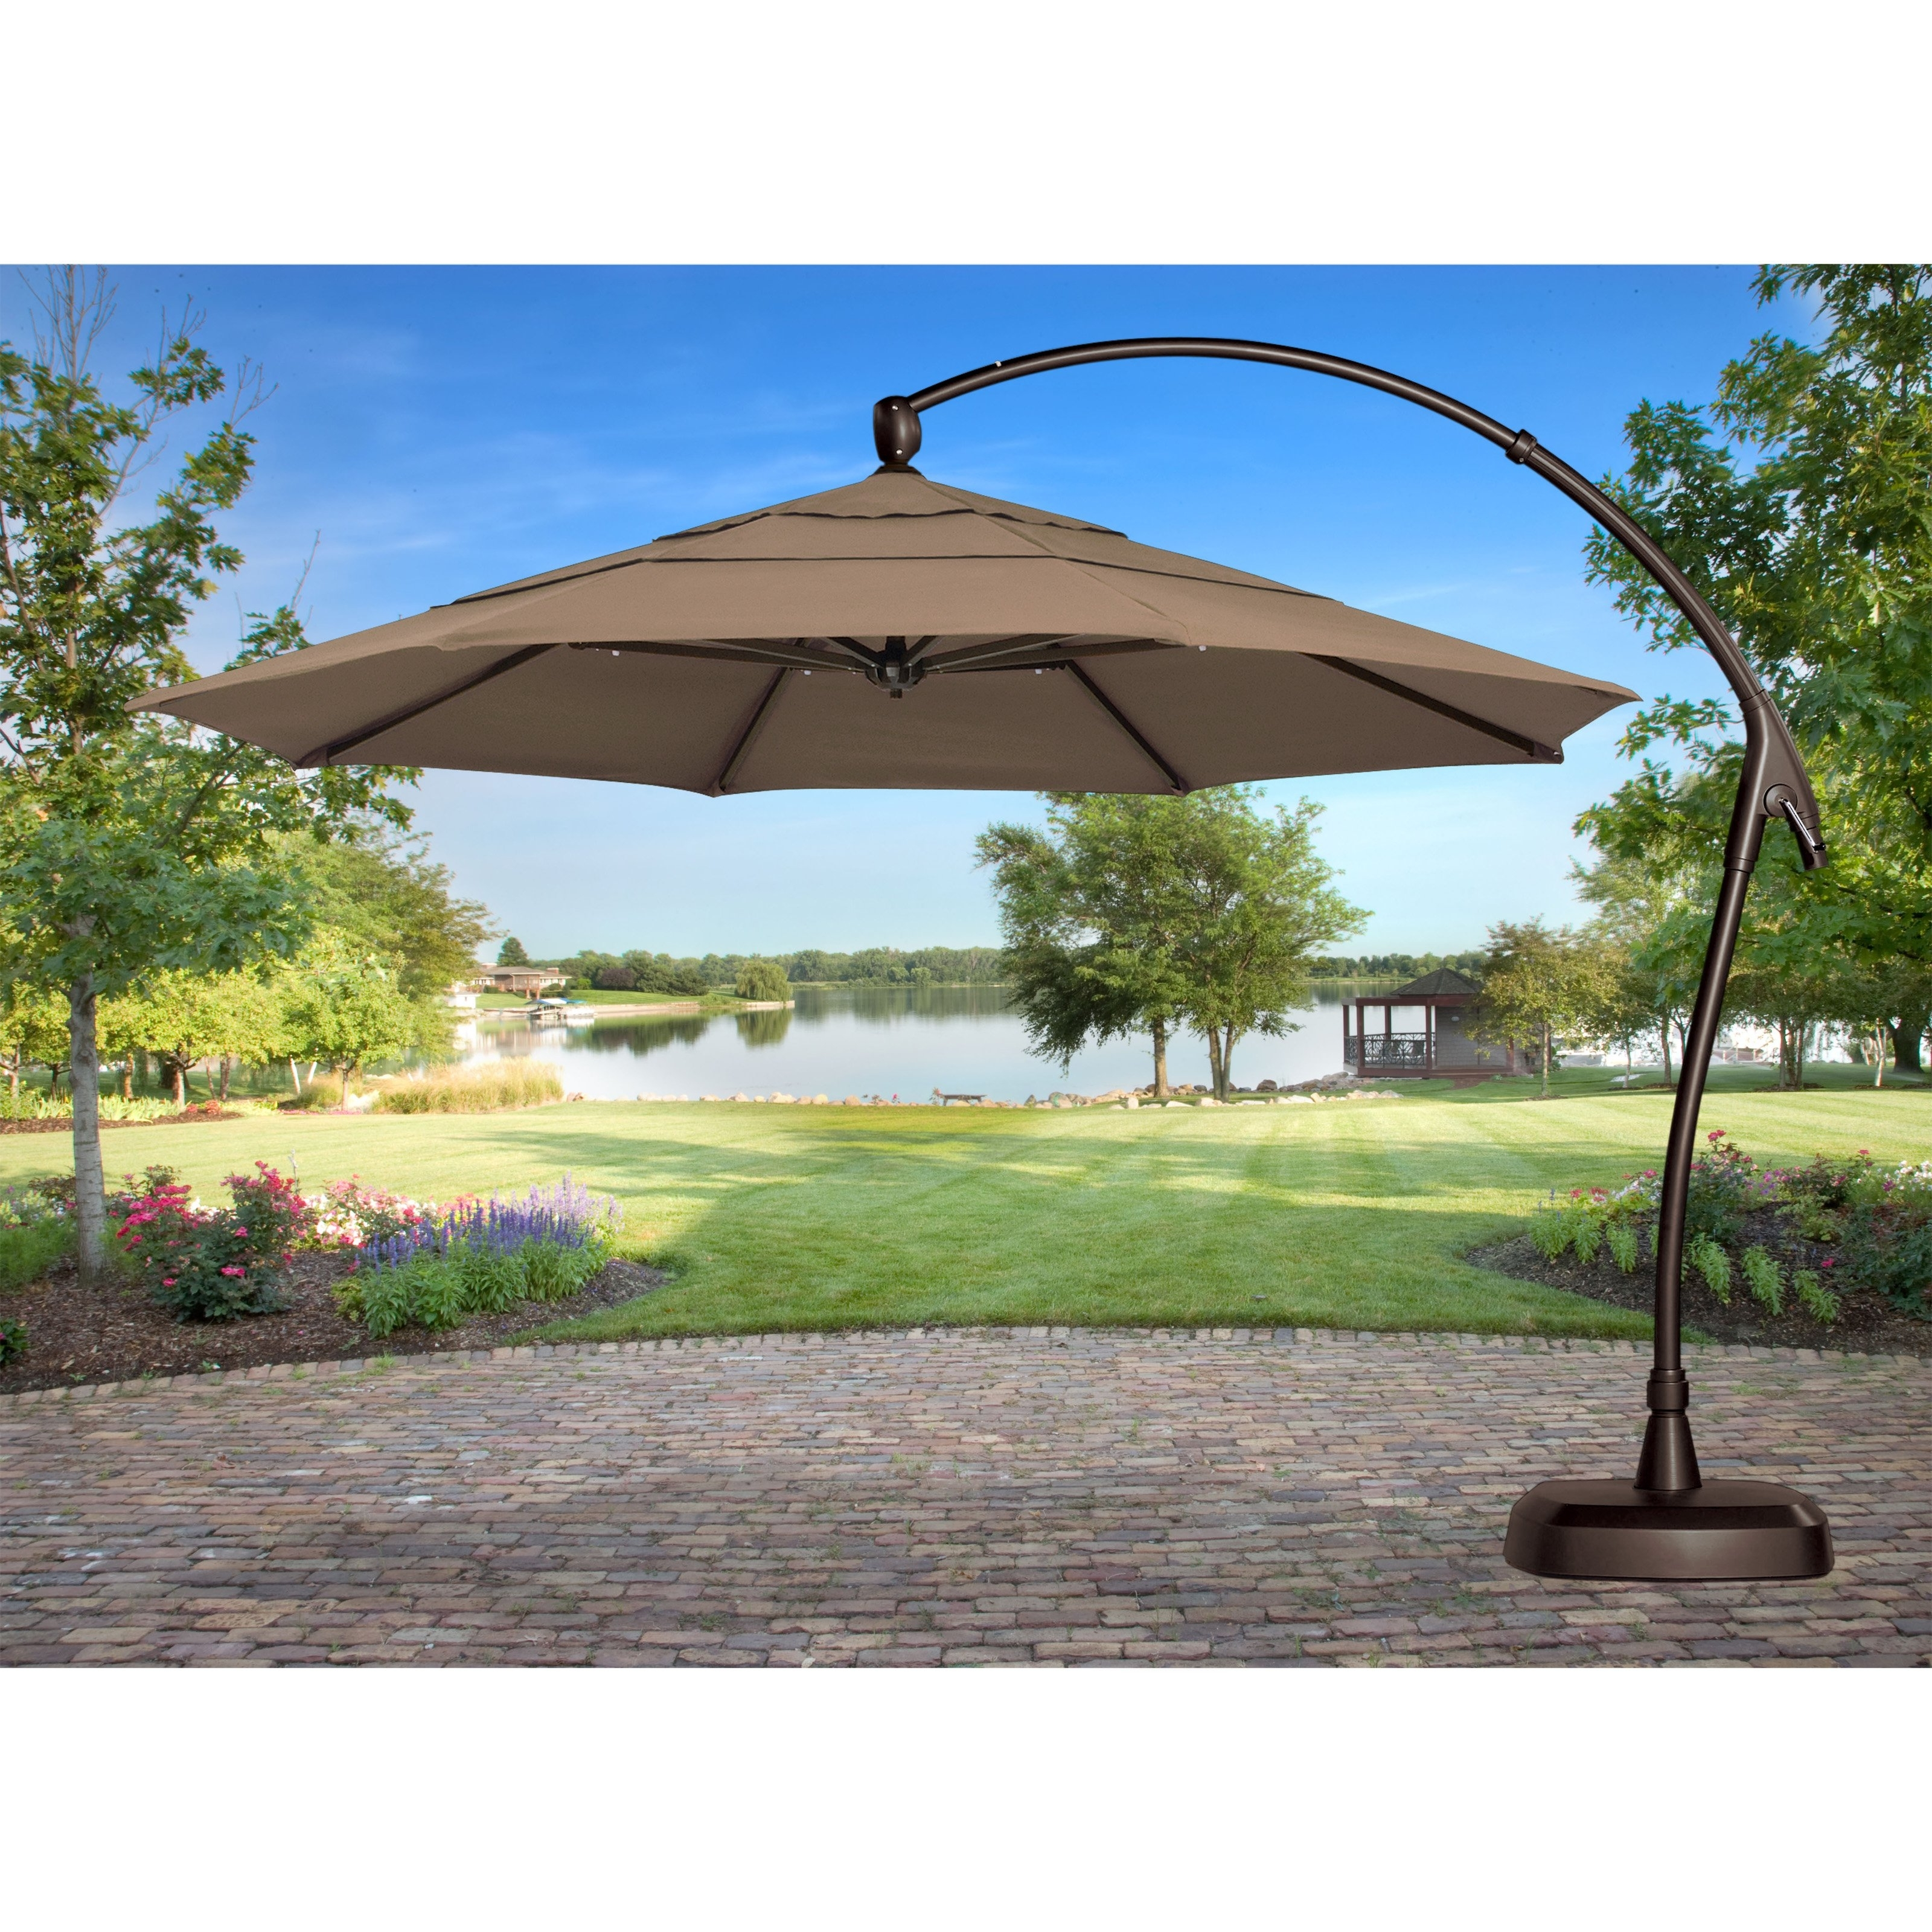 Sunbrella Patio Umbrellas With Solar Lights For Most Recent Treasure Garden 11 Ft (View 10 of 20)